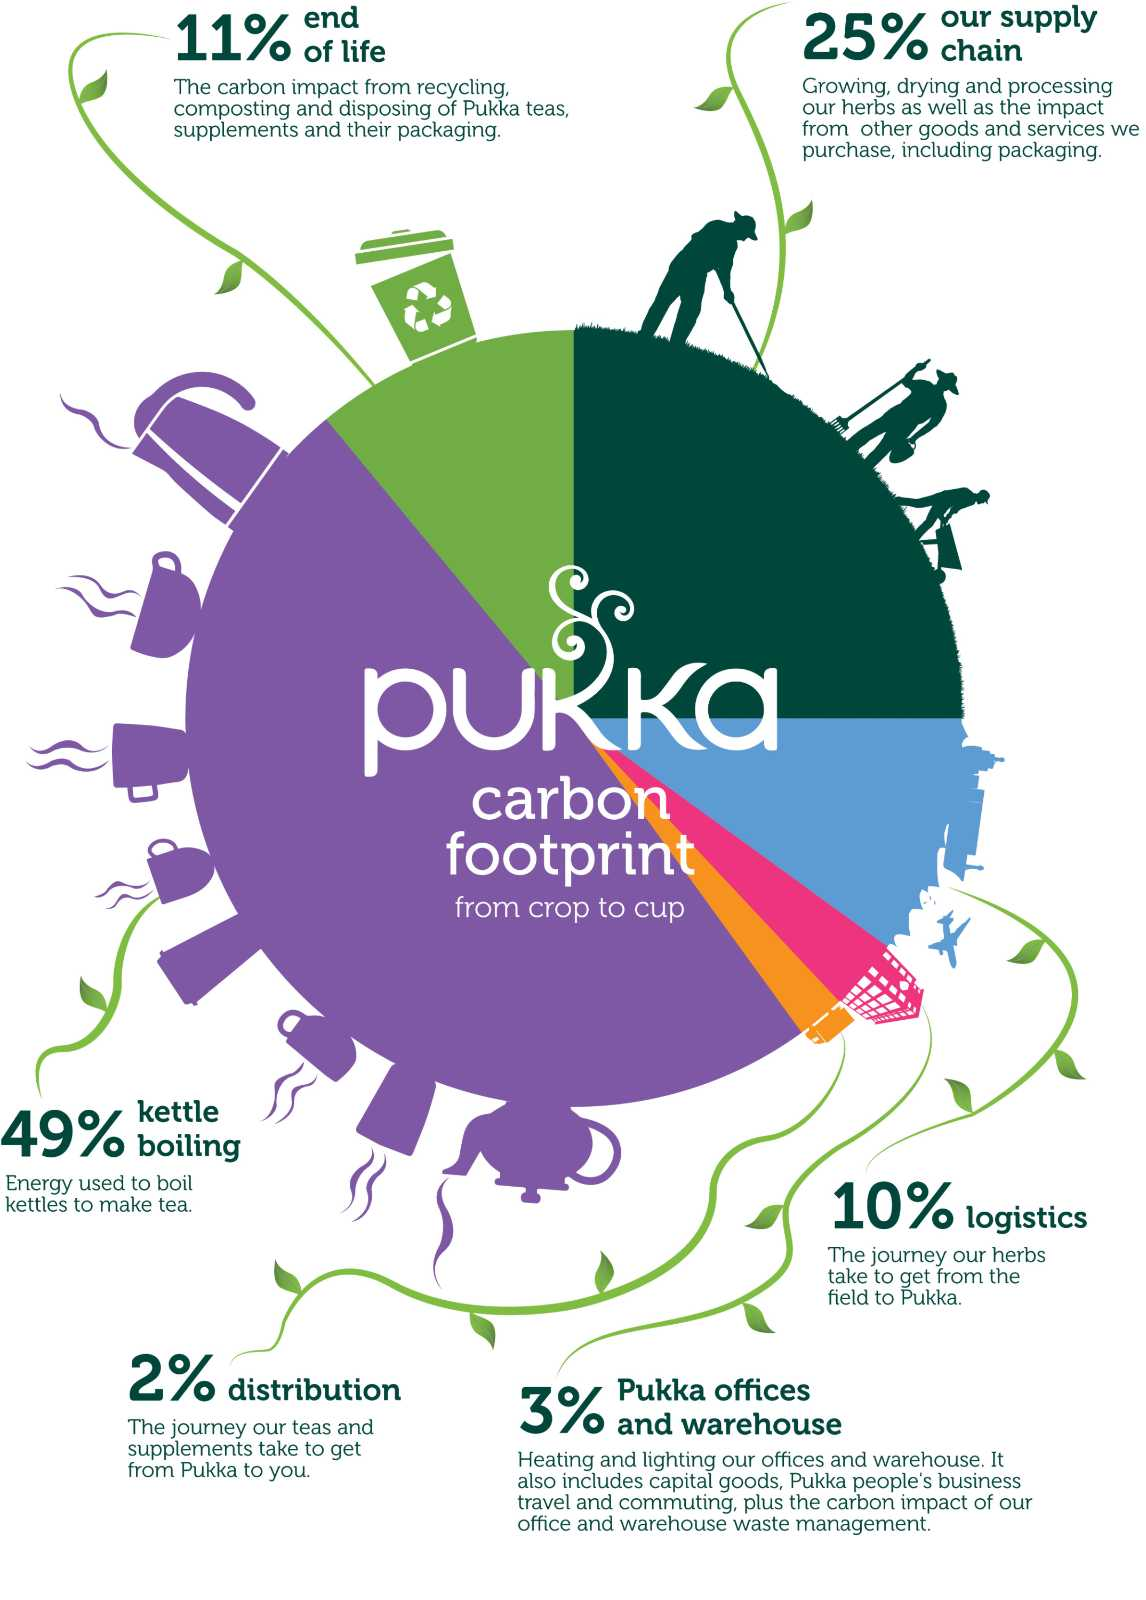 Pukka's carbon footprint